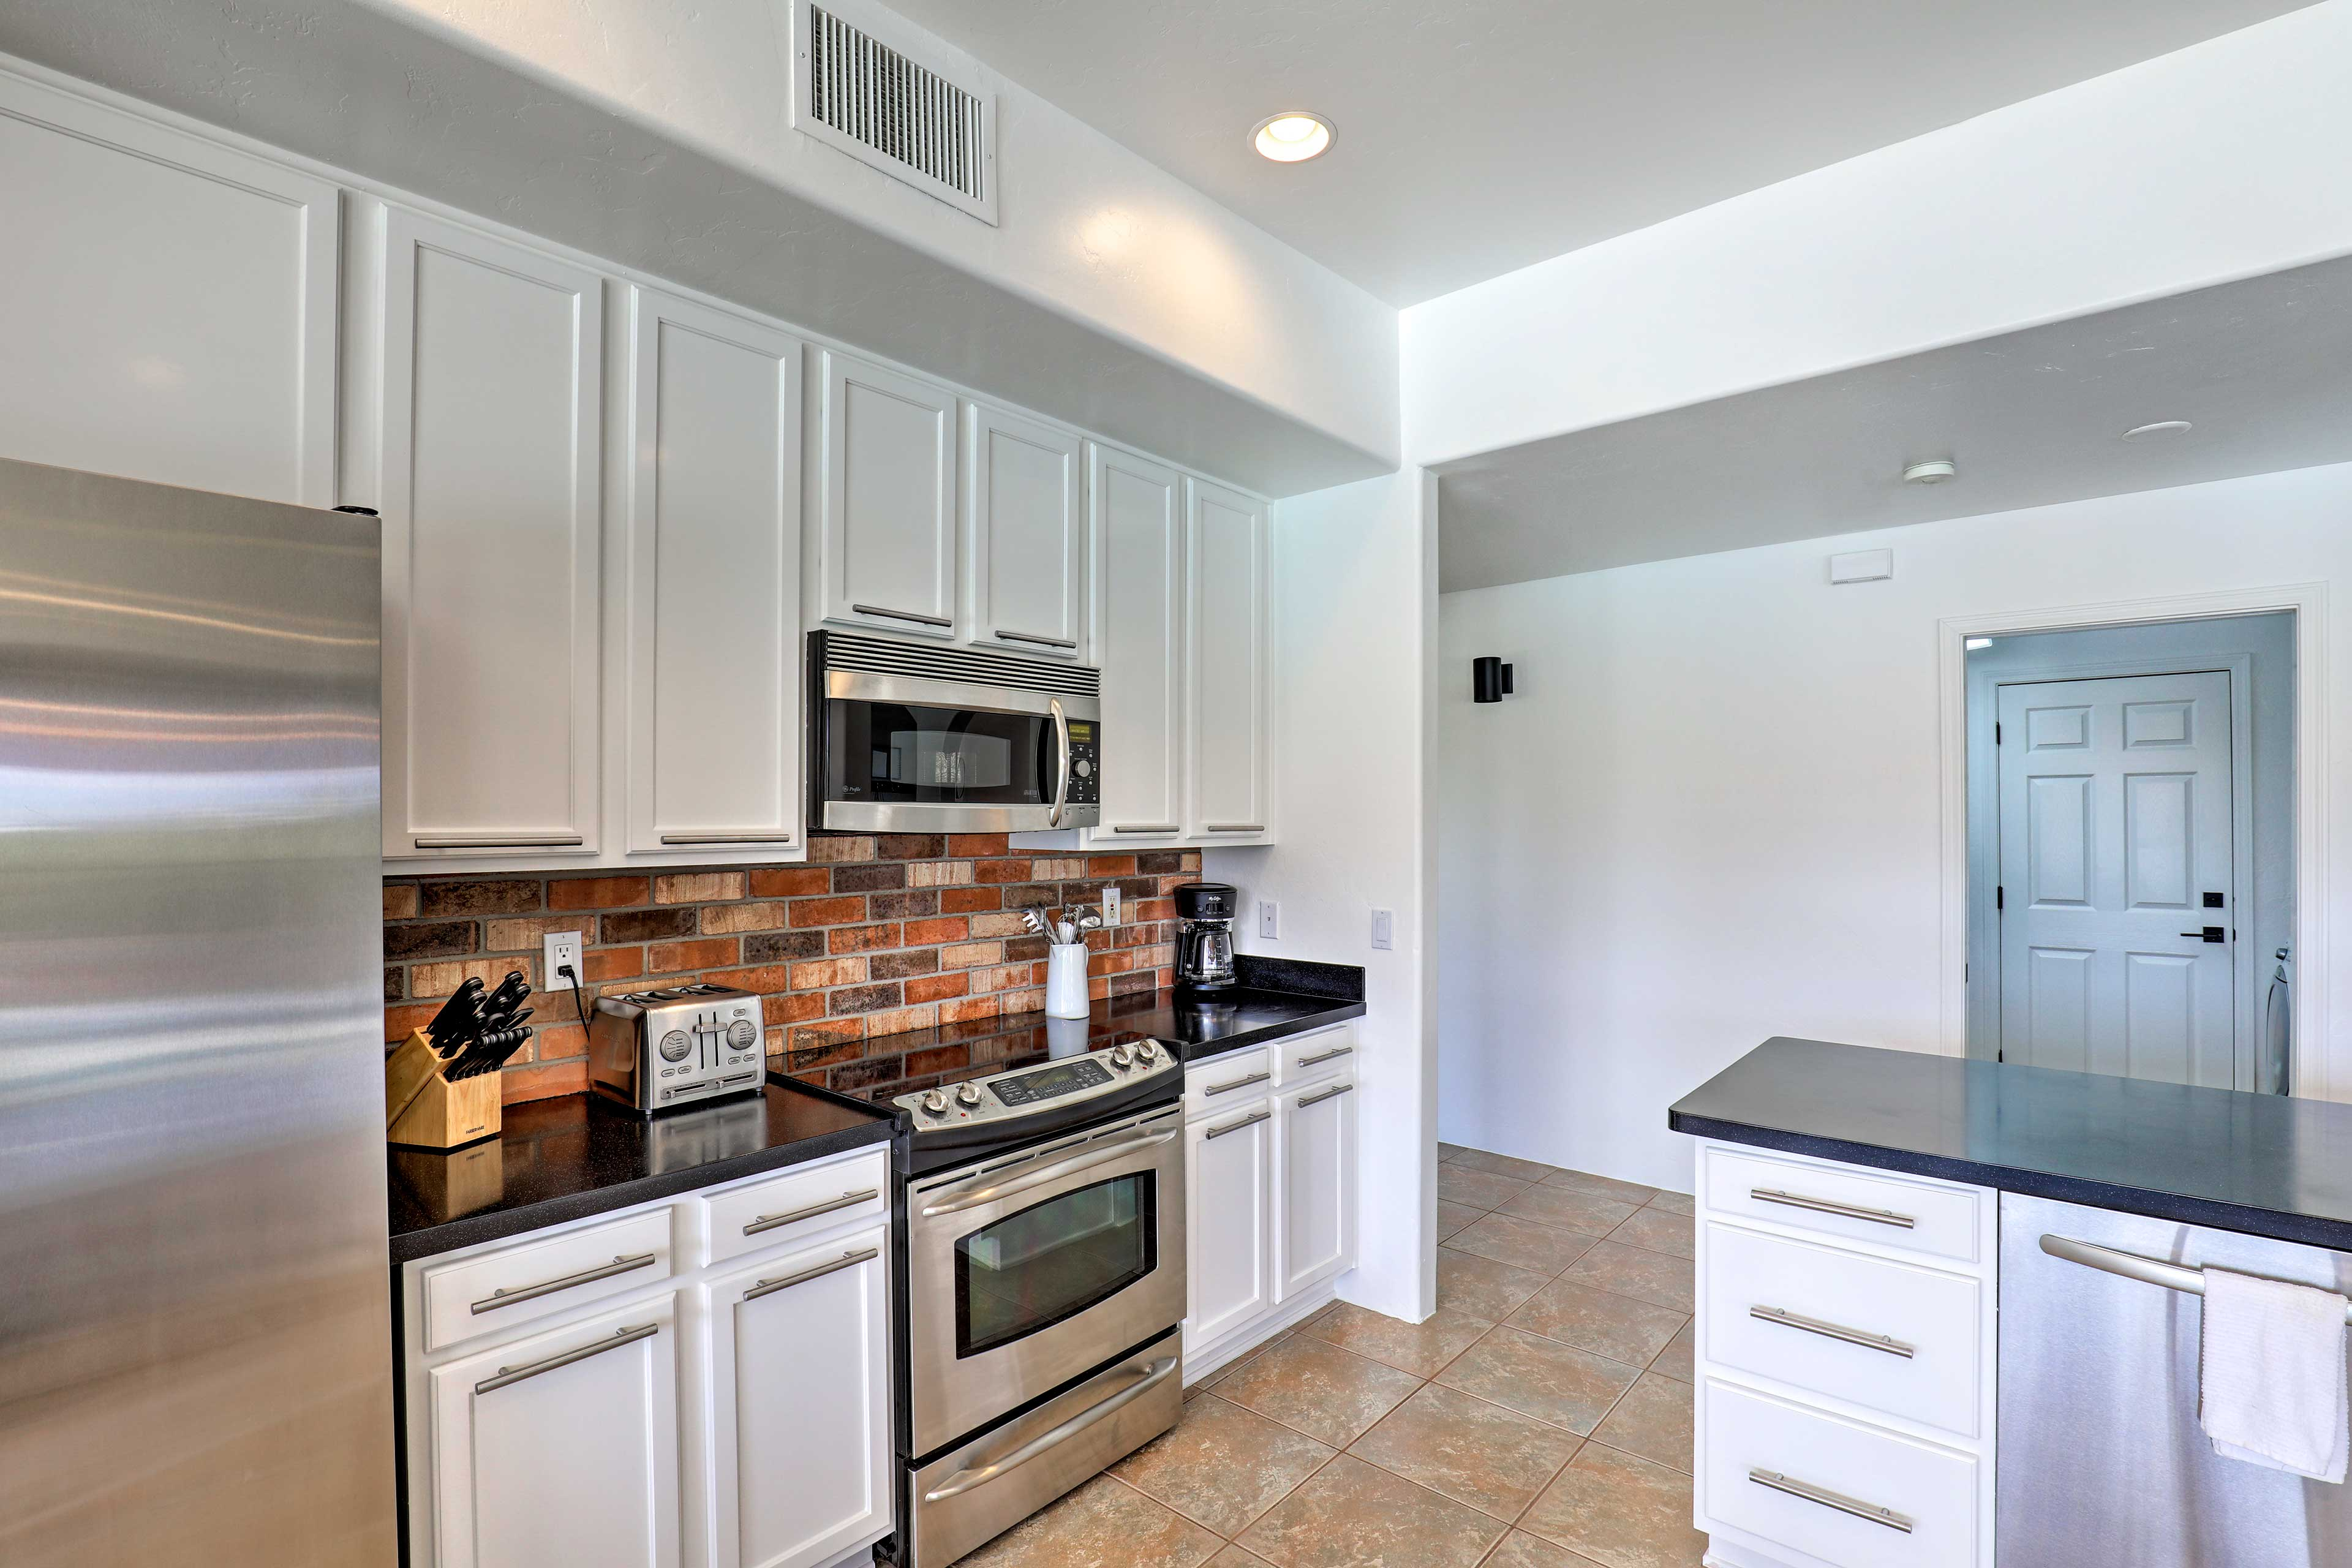 Utilize the stainless steel appliances in this beautiful kitchen.